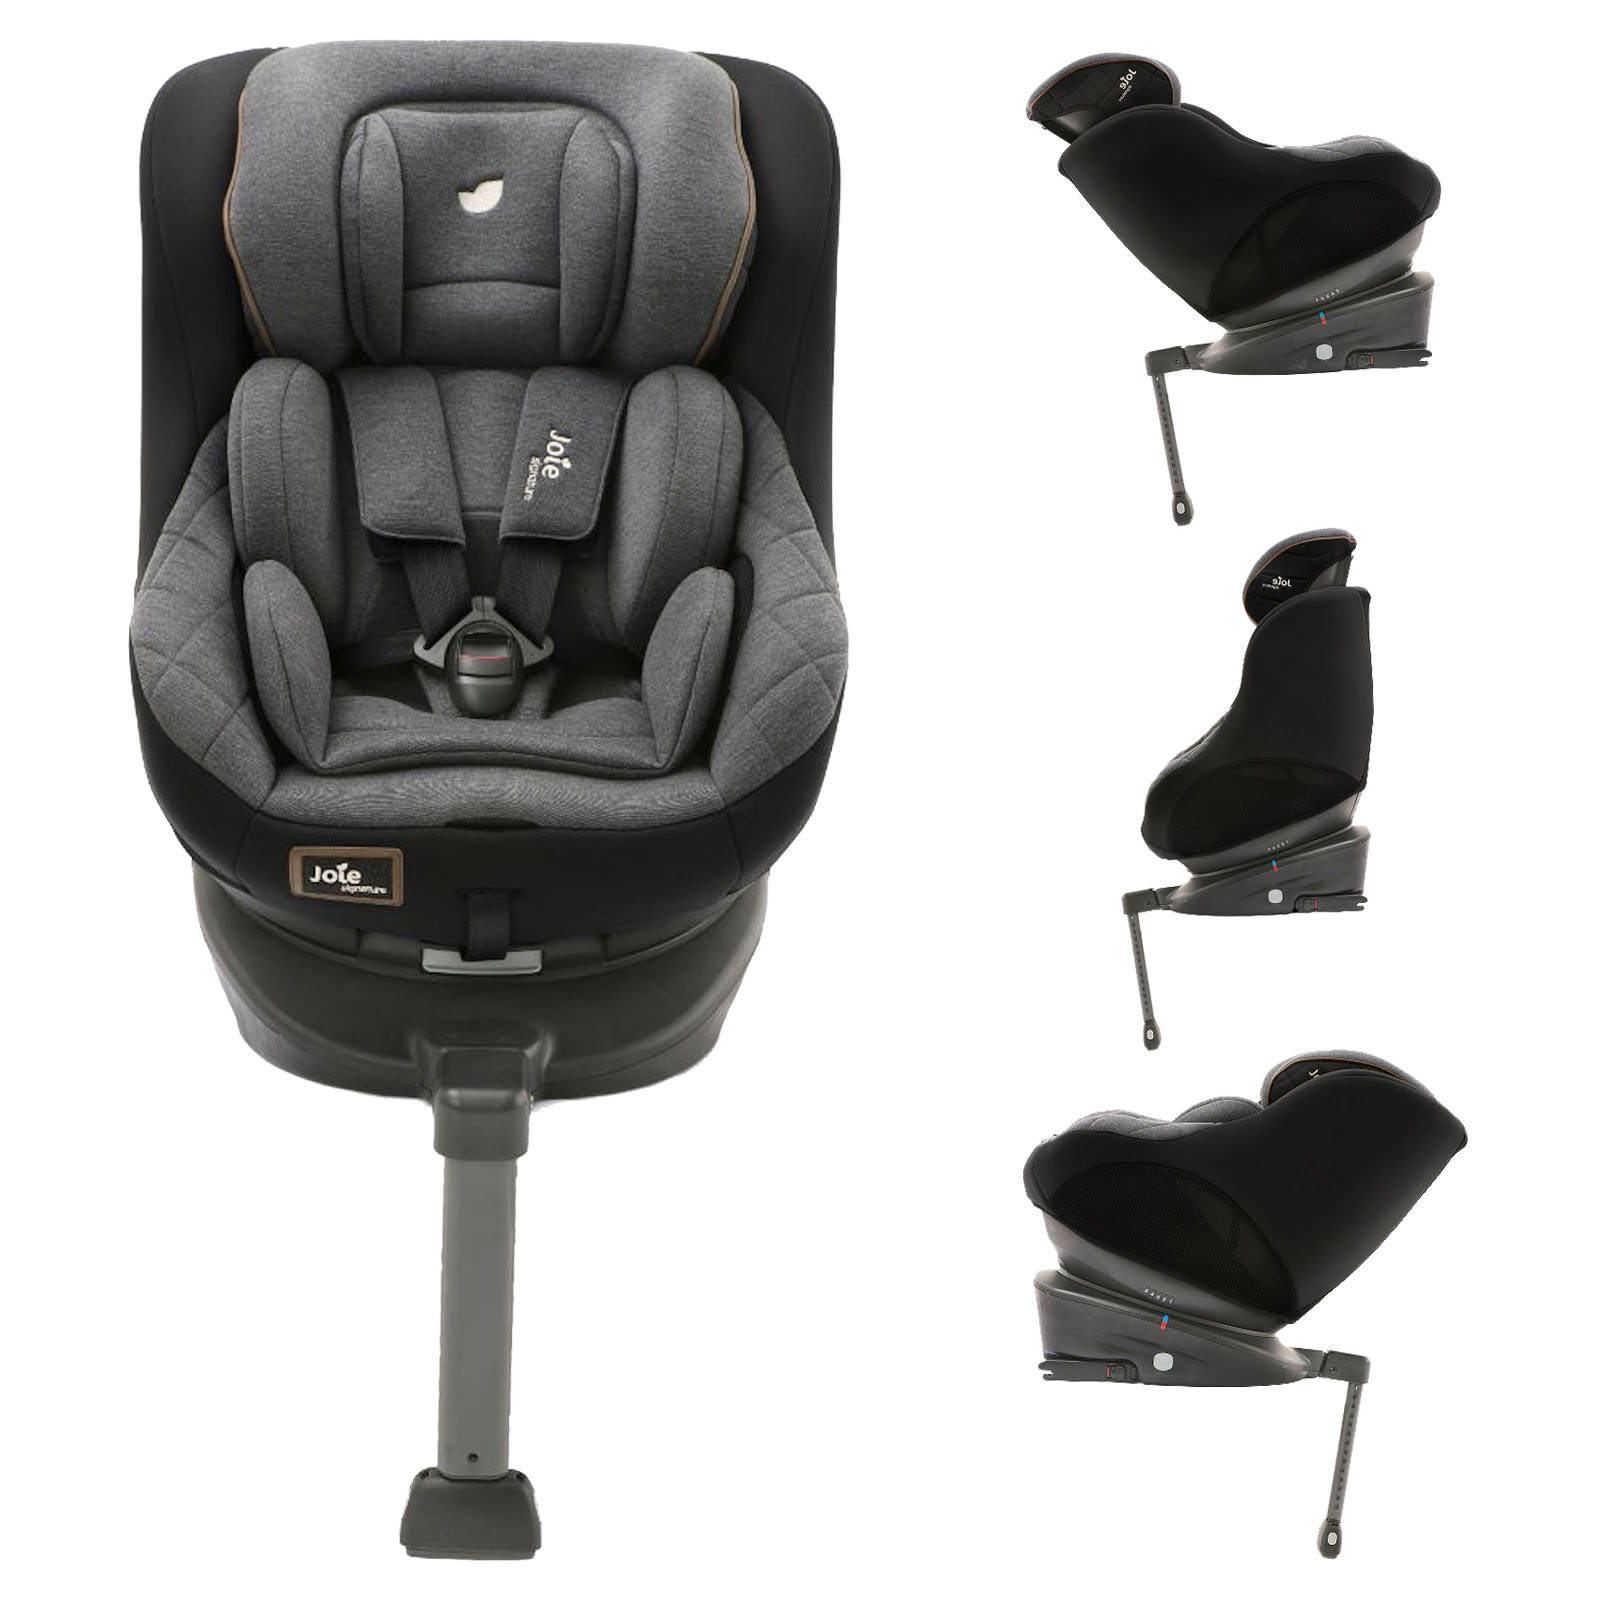 Joie 360 Isofix Installation Joie Limited Edition Spin 360 Group 1 Isofix Car Seat Signature Noir